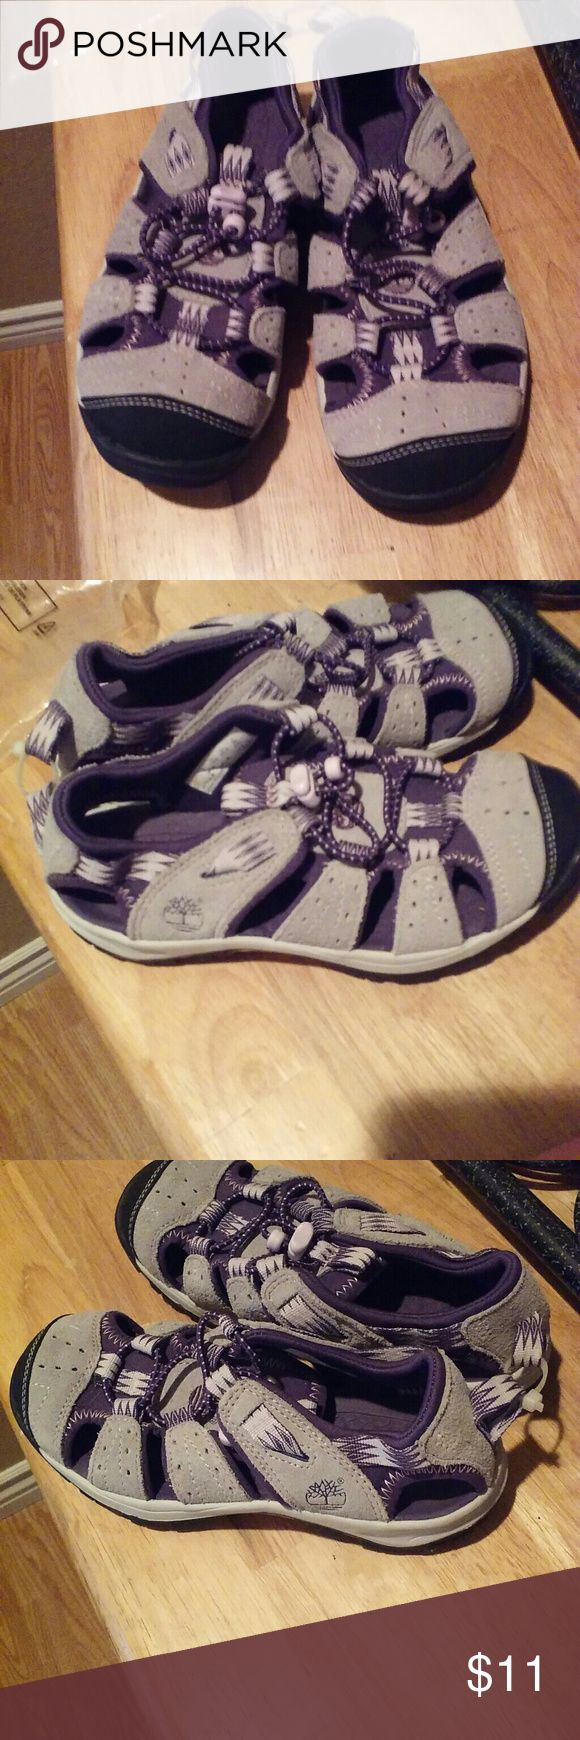 Timberland Girl's Water Shoes Grey and Purple body on the top, pink and black on the bottom, NWOT, great quality, design, and sturdy.  Summer and water sports coming up! ! Timberland Shoes Water Shoes